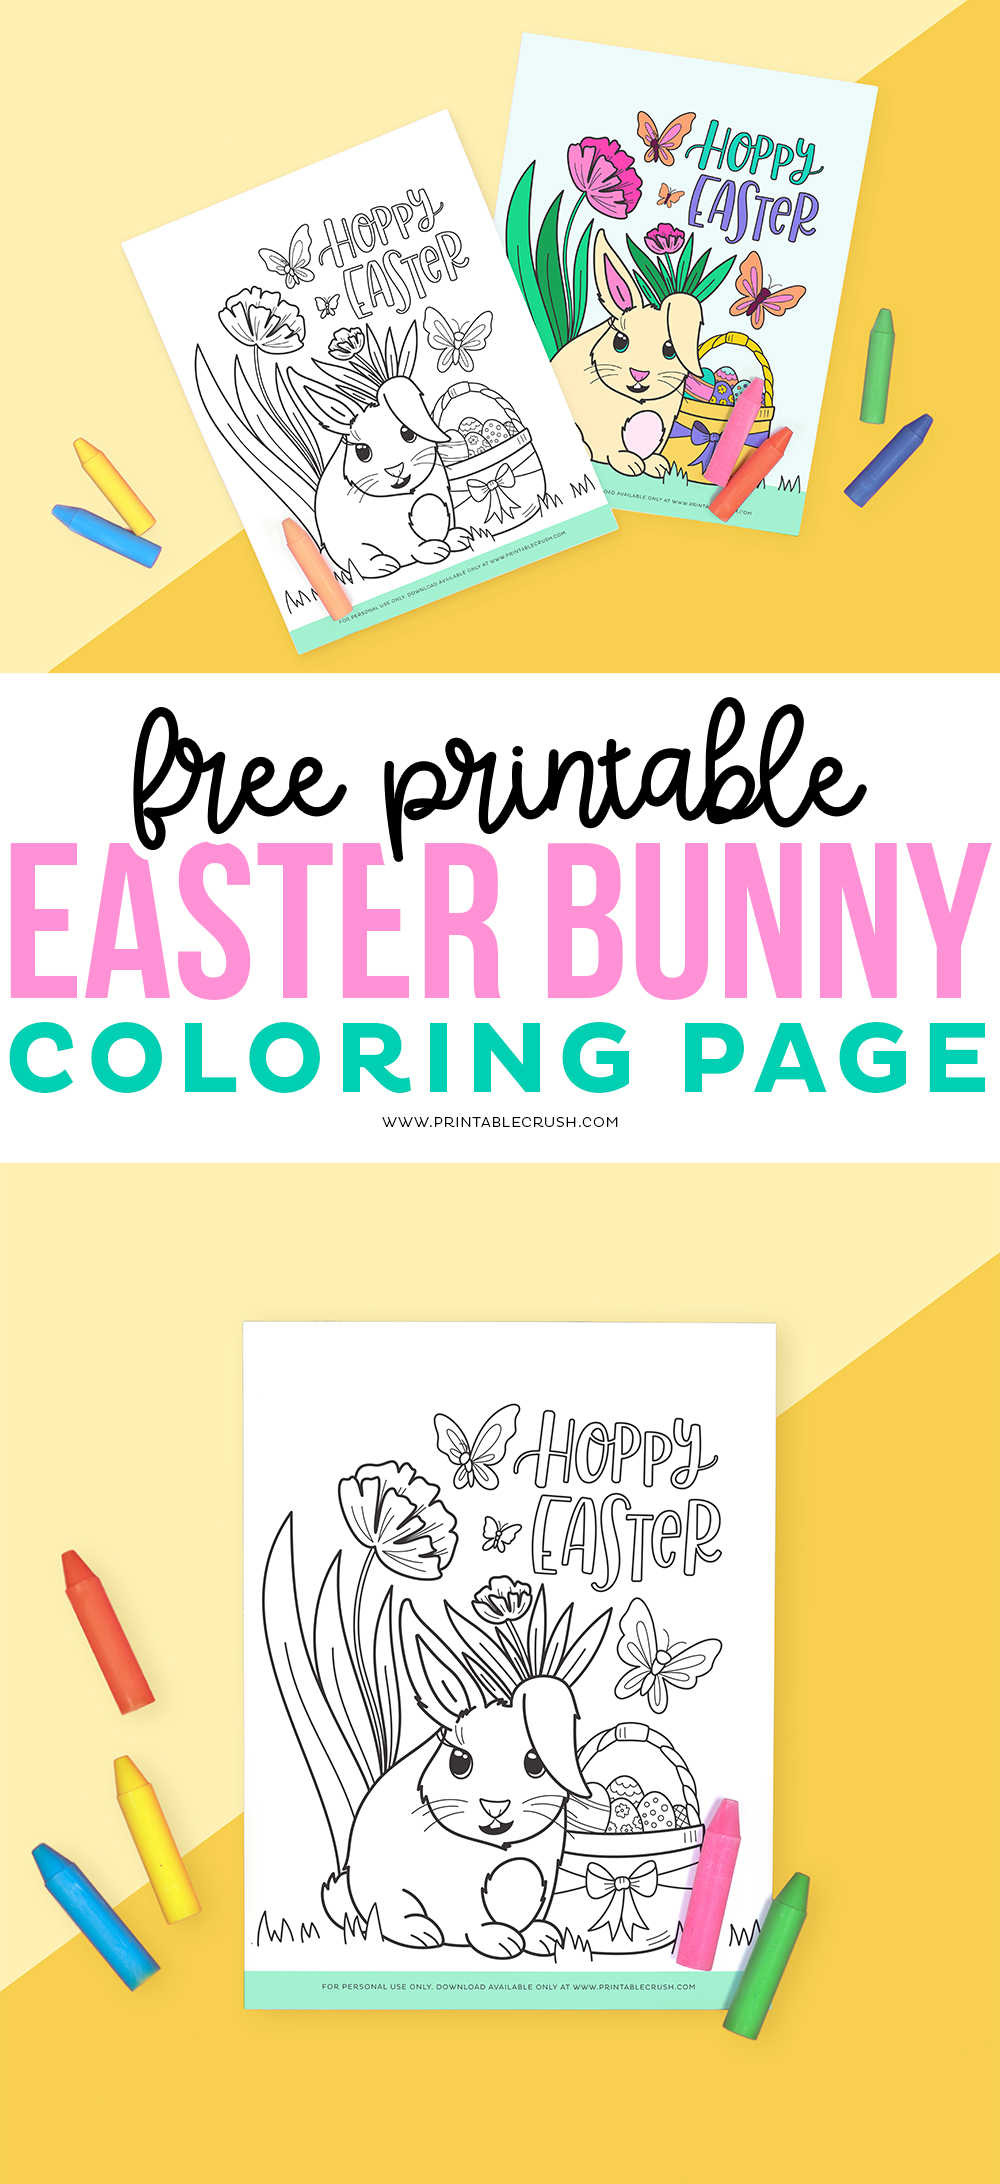 Free Printable Easter Bunny Coloring Page - Easter Coloring Page - Easter Colouring Page - Easter Bunny Colouring Page - Printable Crush